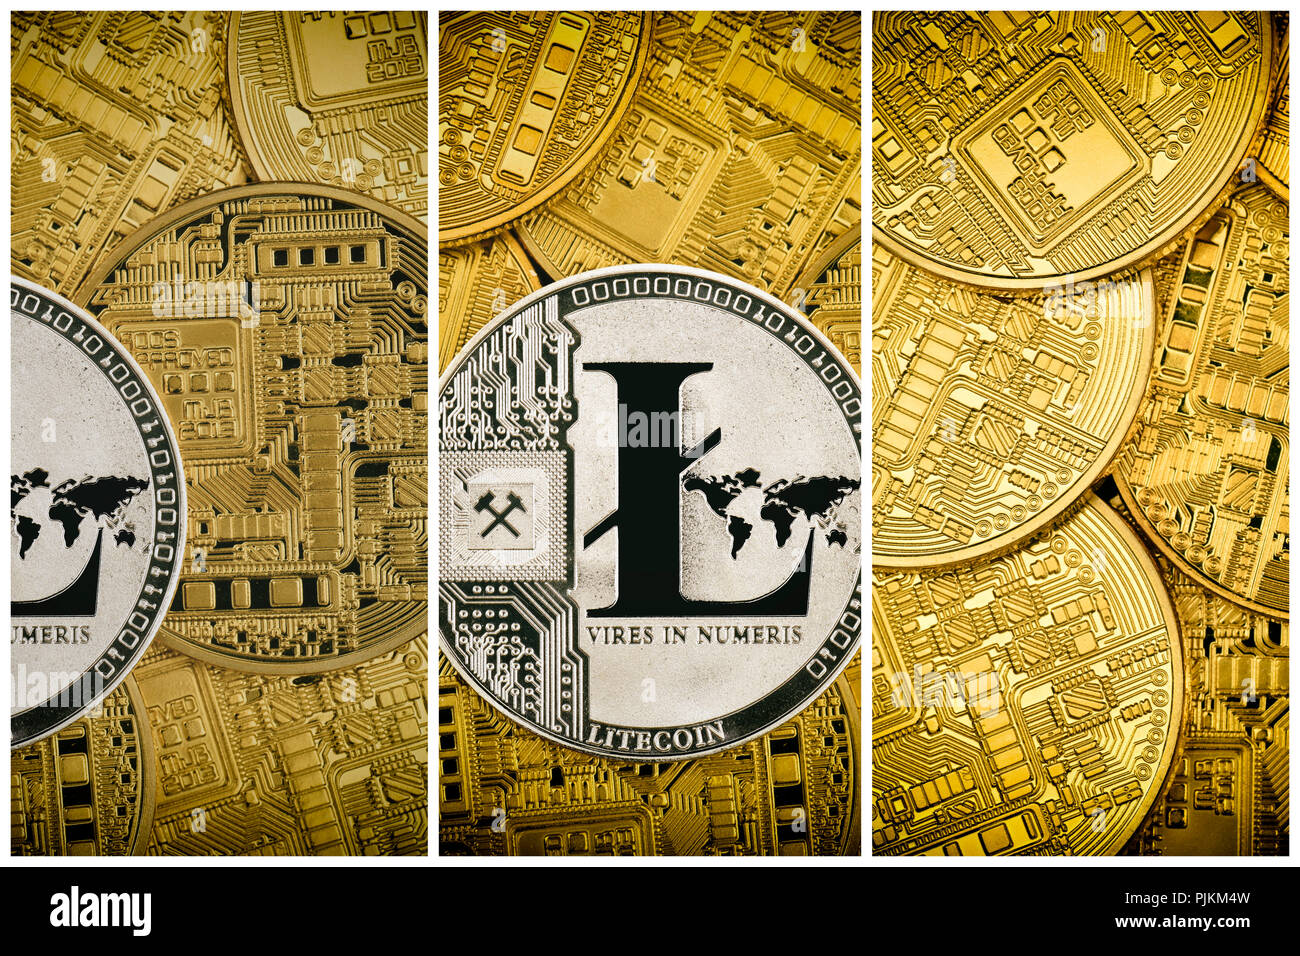 Symbolic image of digital currency, silver coin litecoin among golden physical coins Stock Photo